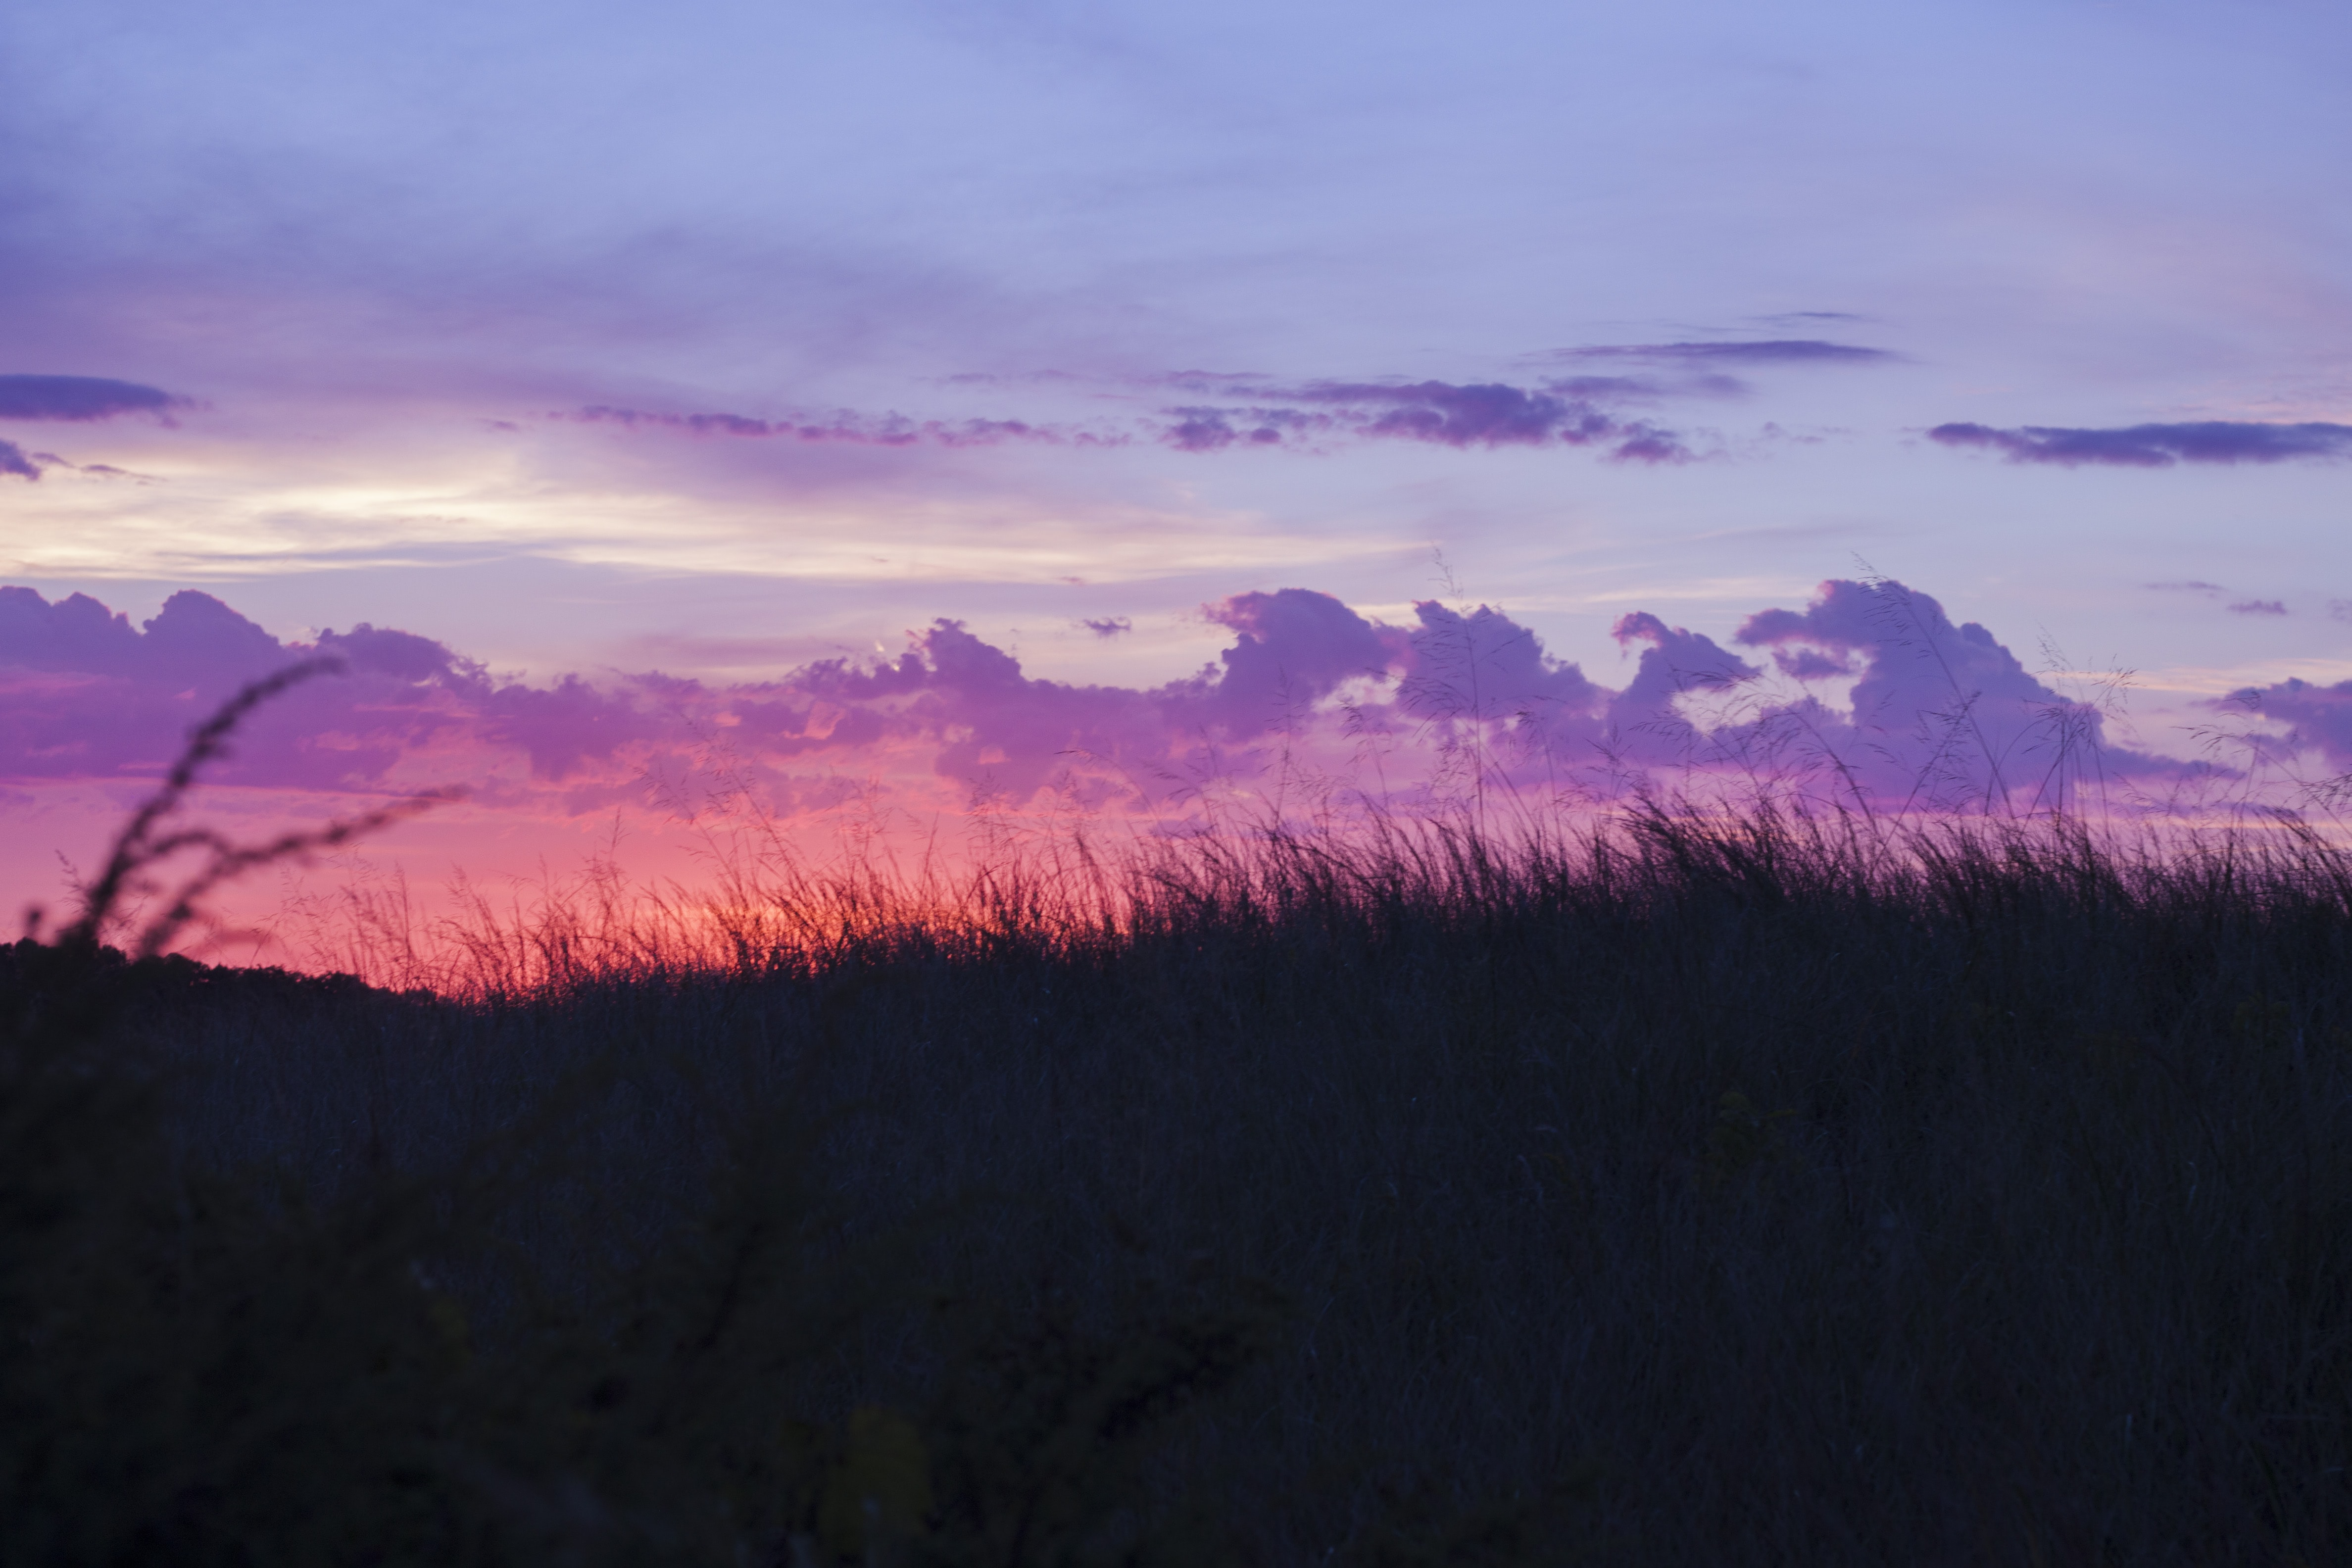 Purple clouds over grasslands in Indiana Dunes National Lakeshore